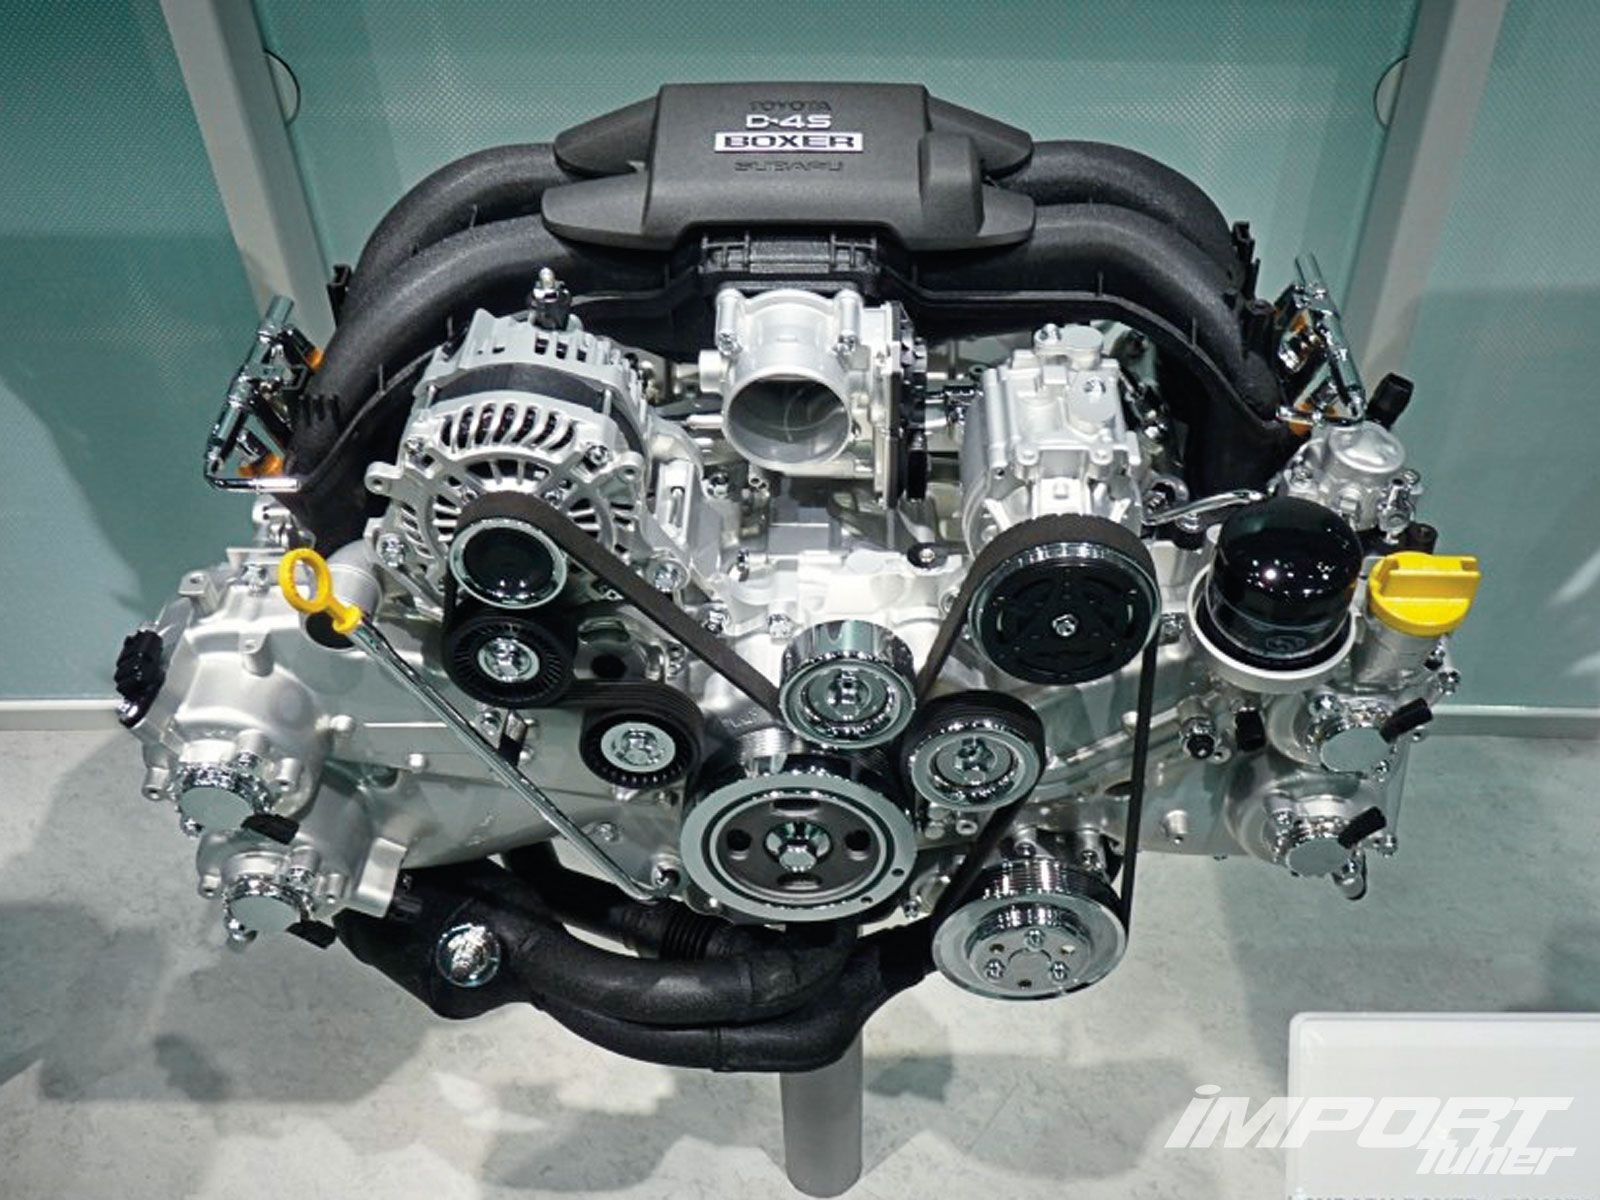 Scion Frs Boxer Engine Diagram Scion Frs Boxer Engine Diagram Scion Fr–s First Drive In Japan Of Scion Frs Boxer Engine Diagram